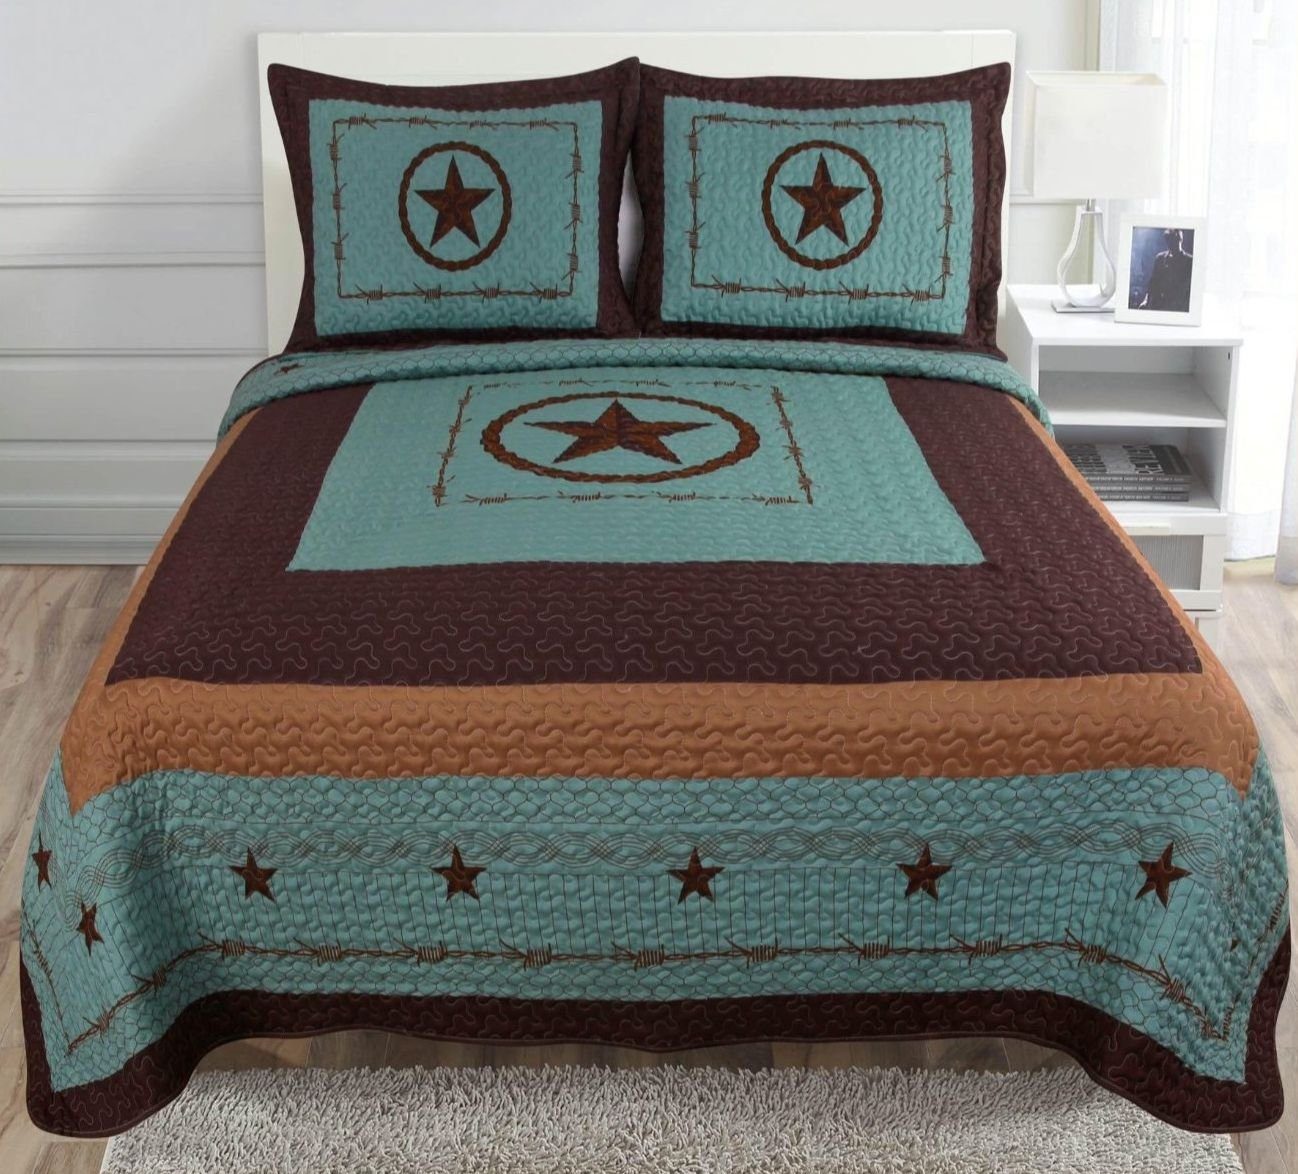 Amazon.com: 3-piece Western Lone Star Barb Wire Cabin / Lodge ... : western quilt bedding sets - Adamdwight.com